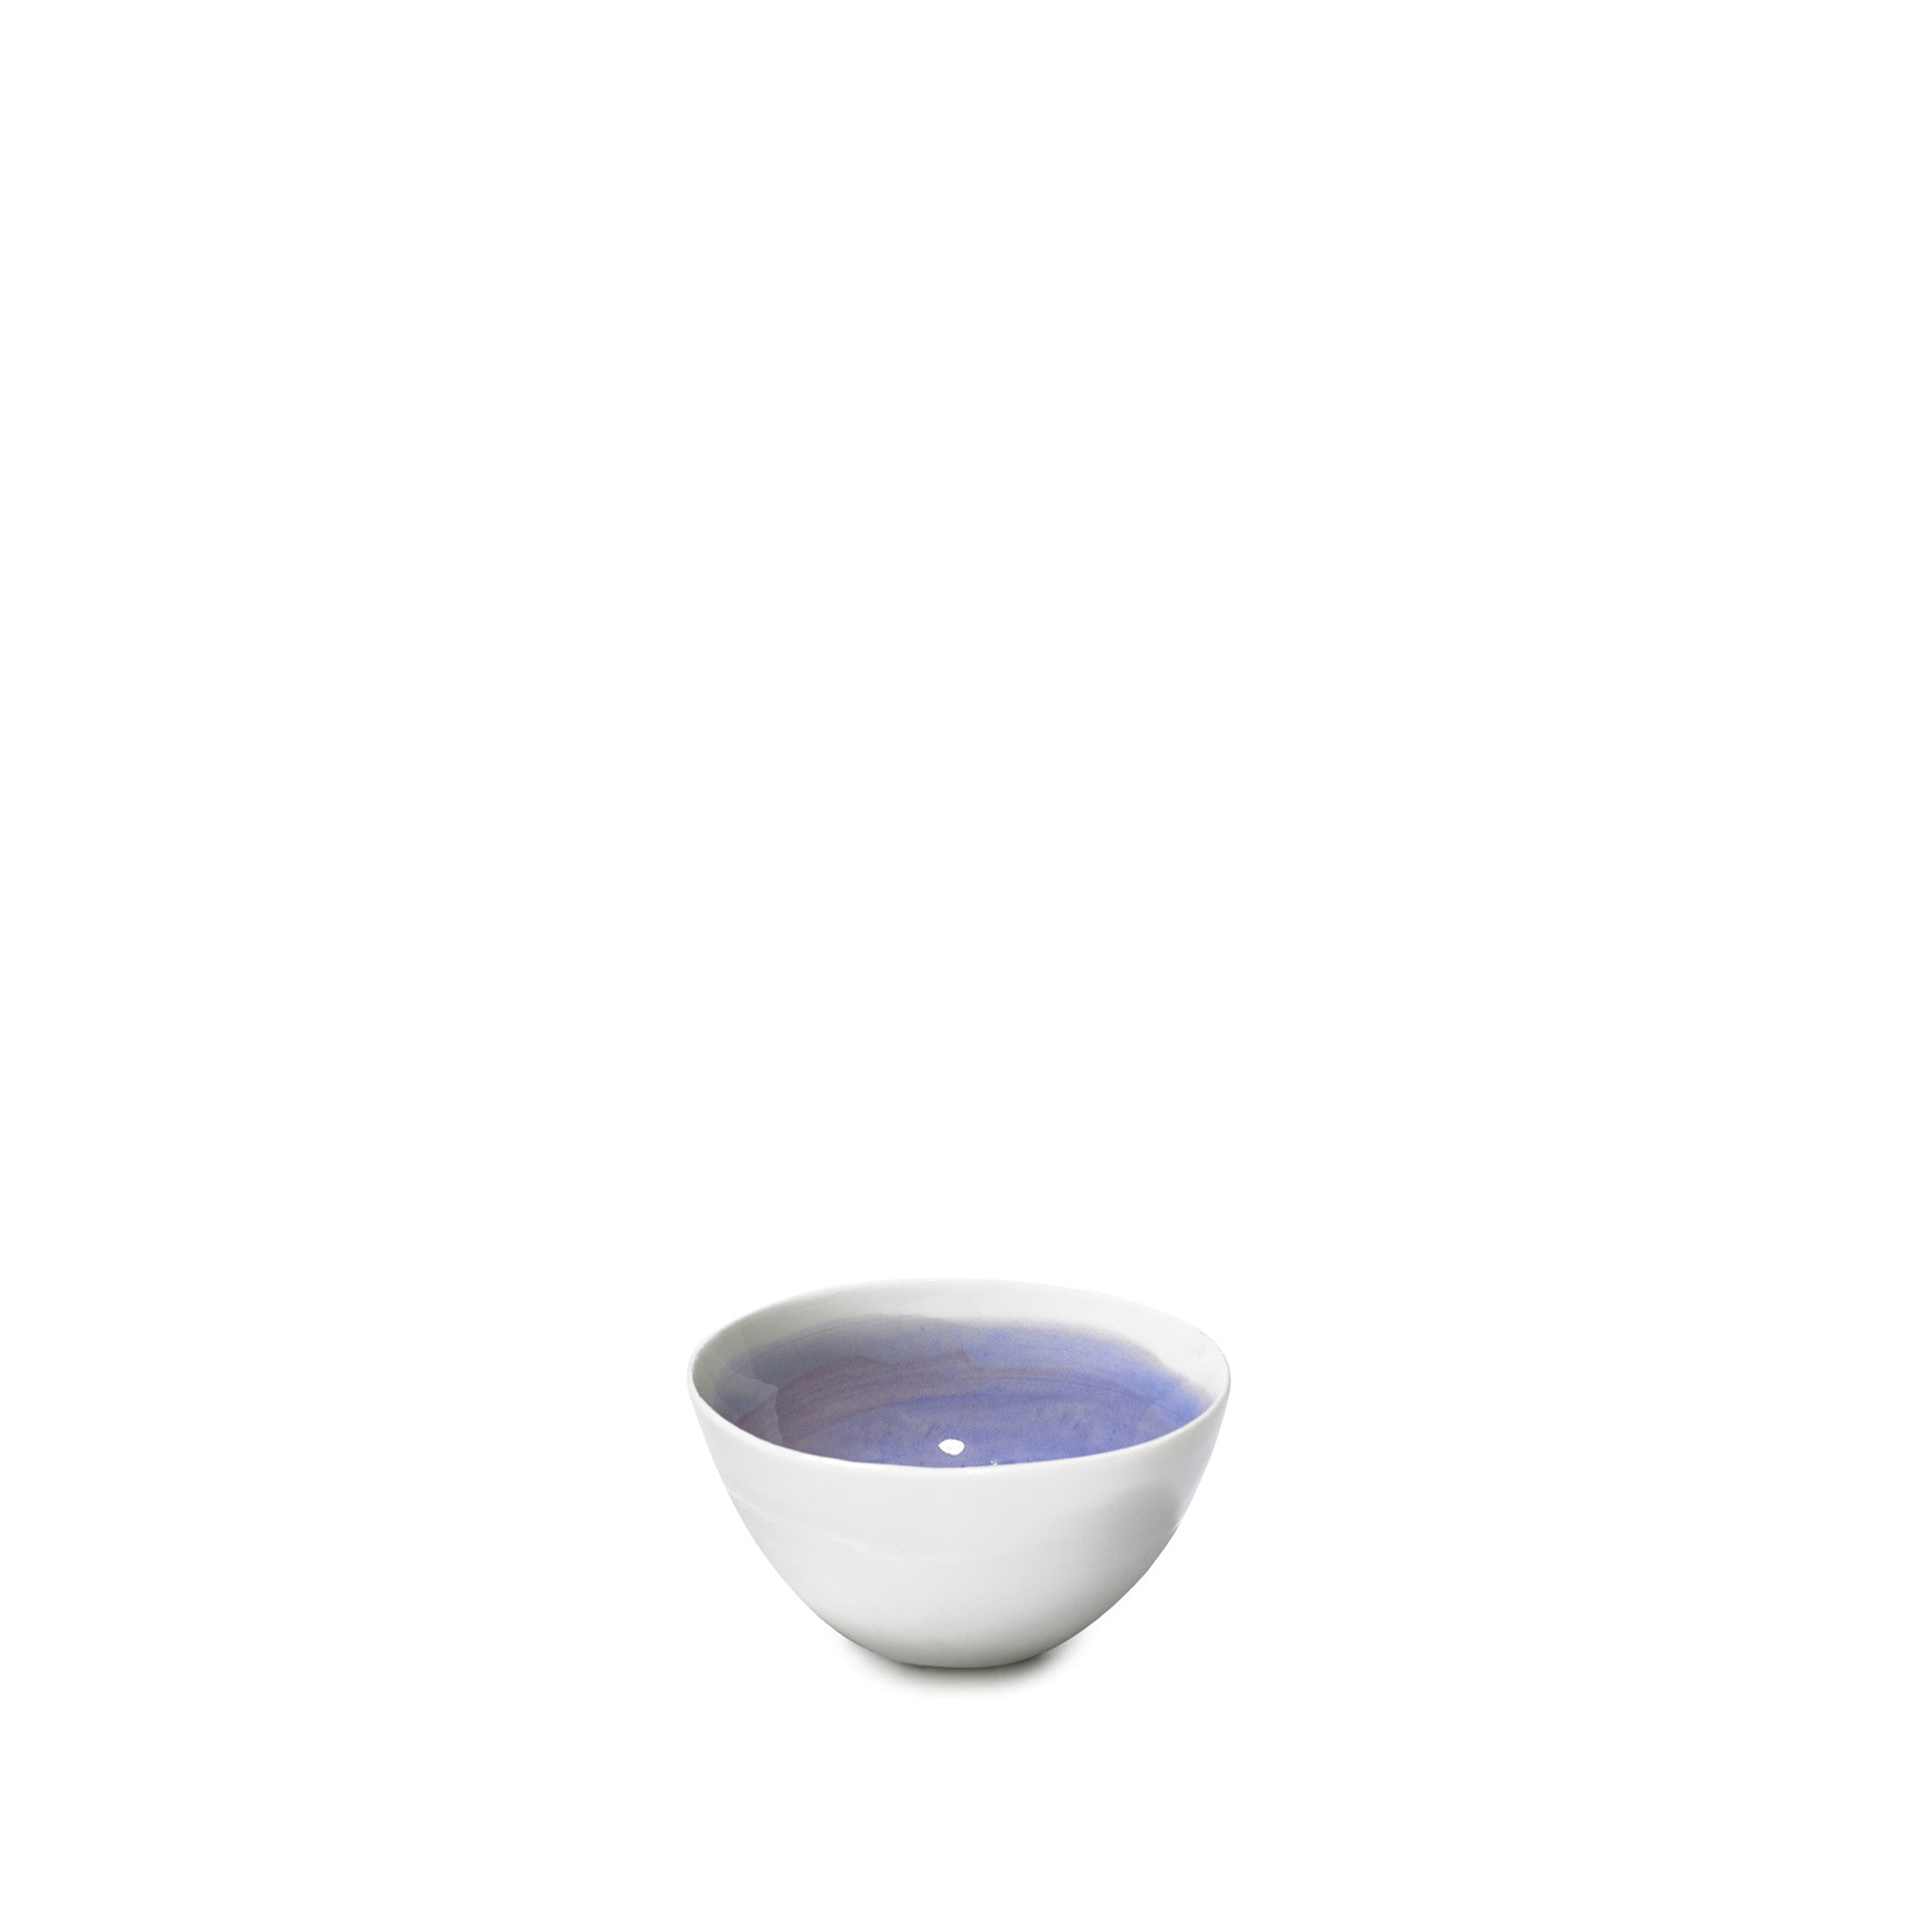 Small Violet Porcelain Bowl with White Edge, 8cm